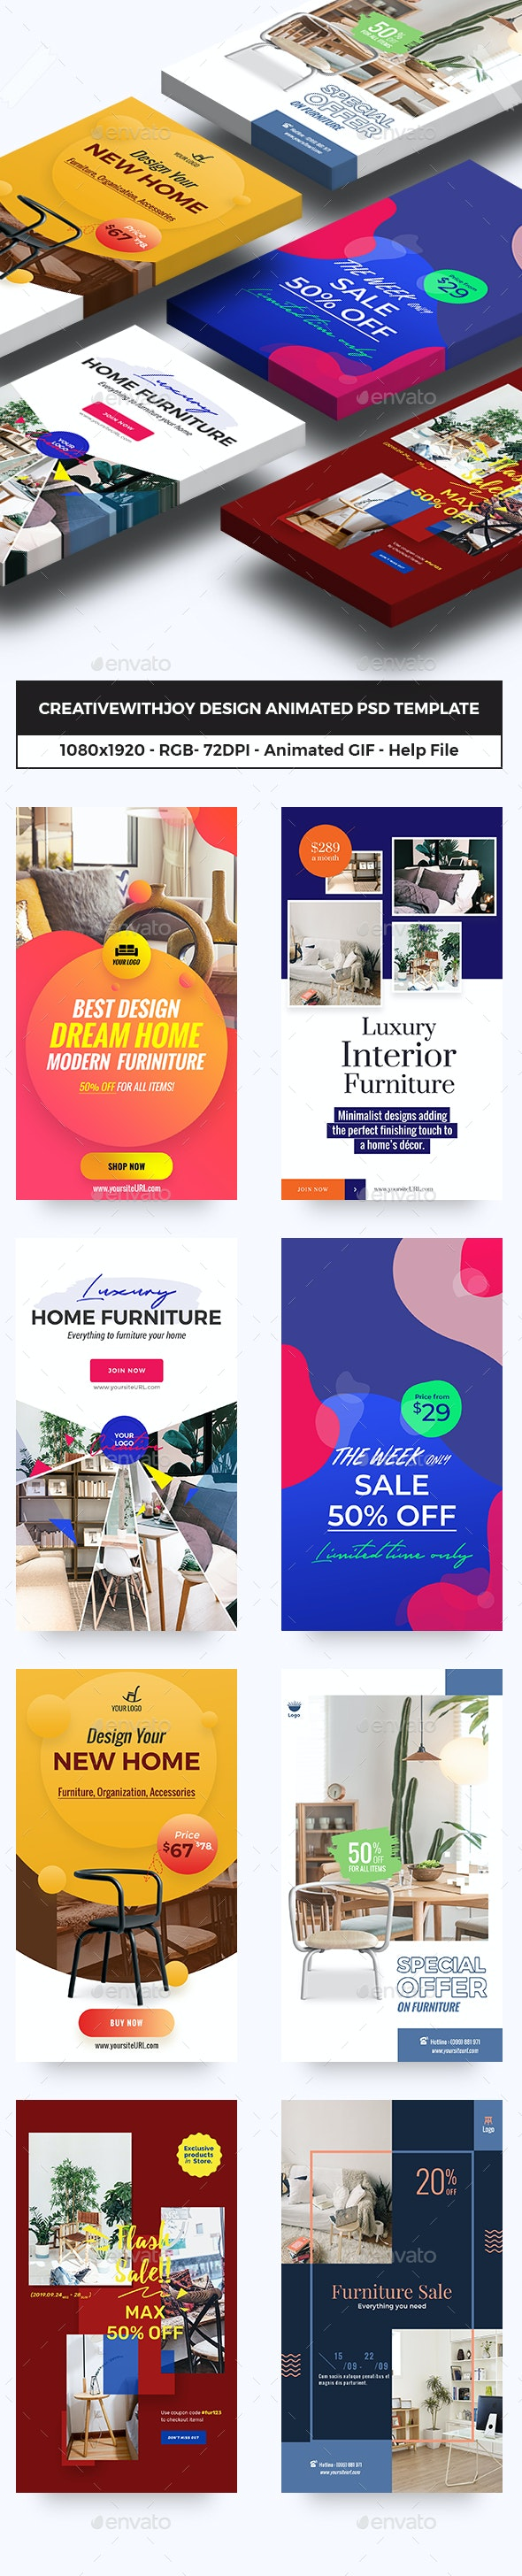 Furniture, Decor Animated GIFs Instagram Stories - Social Media Web Elements